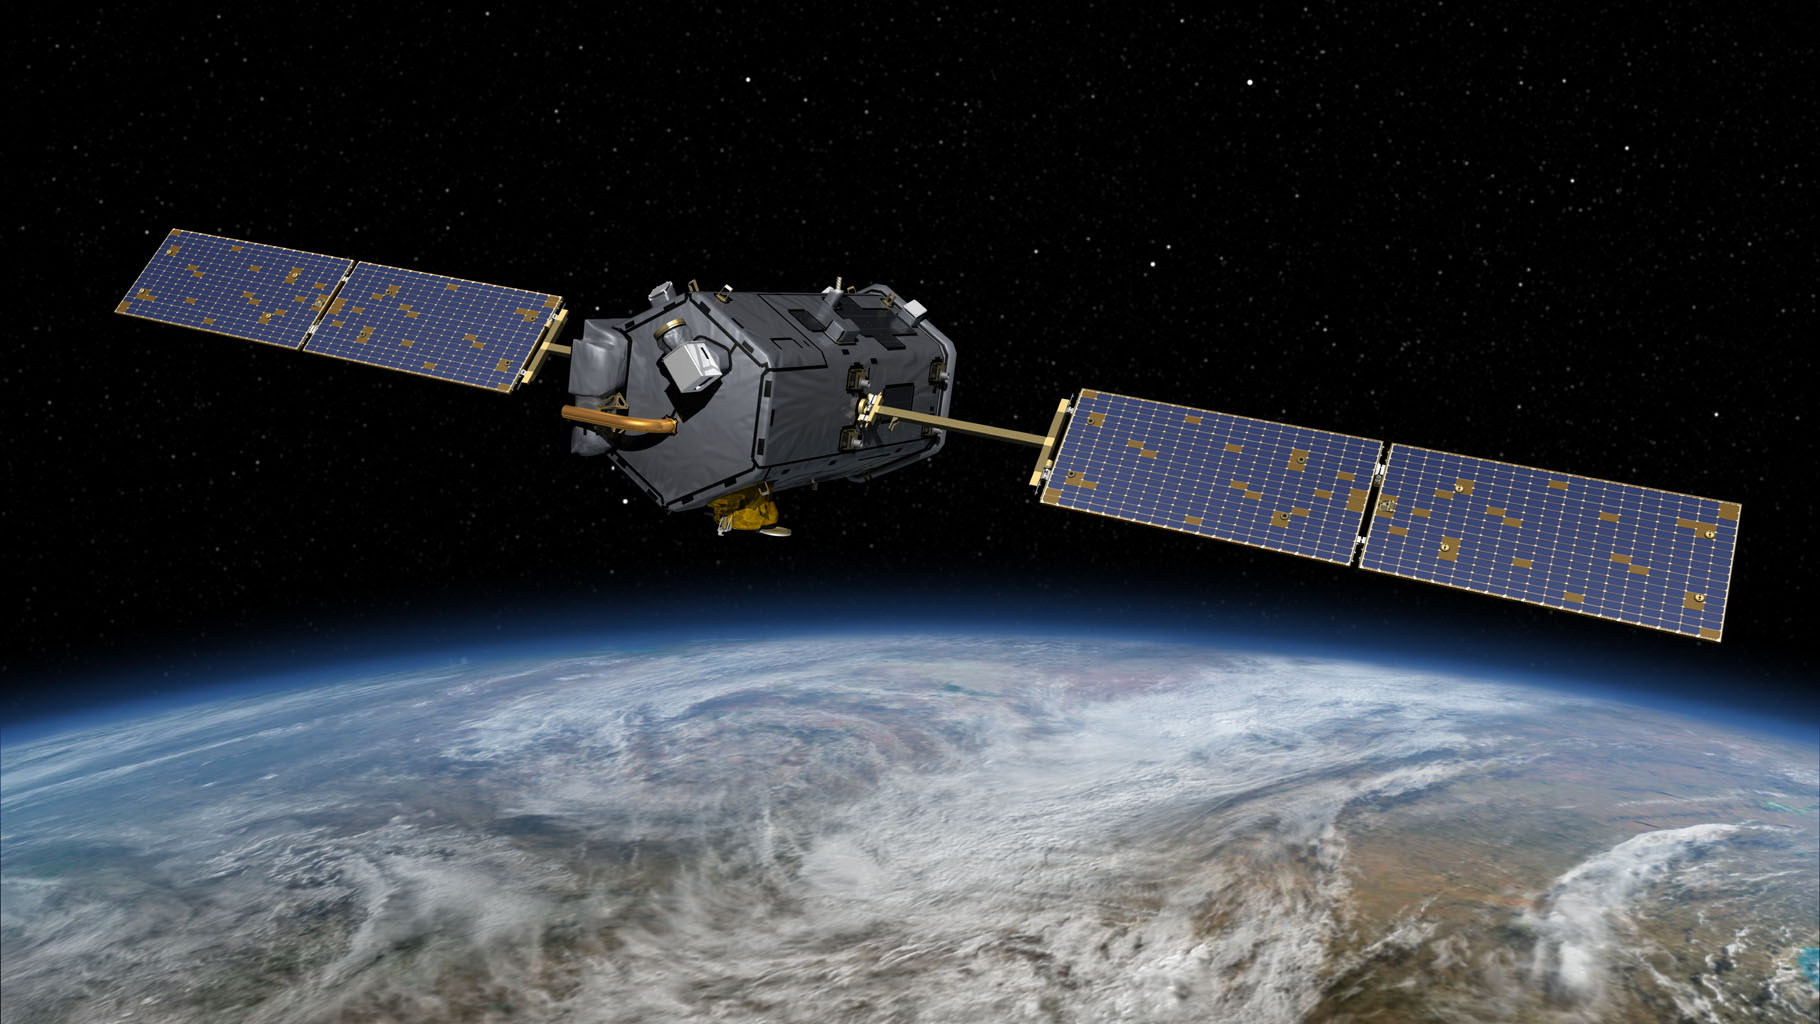 This most recent artist's rendering shows NASA's Orbiting Carbon Observatory (OCO)-2, one of five new NASA Earth science missions set to launch in 2014, and one of three managed by the Jet Propulsion Laboratory (JPL).